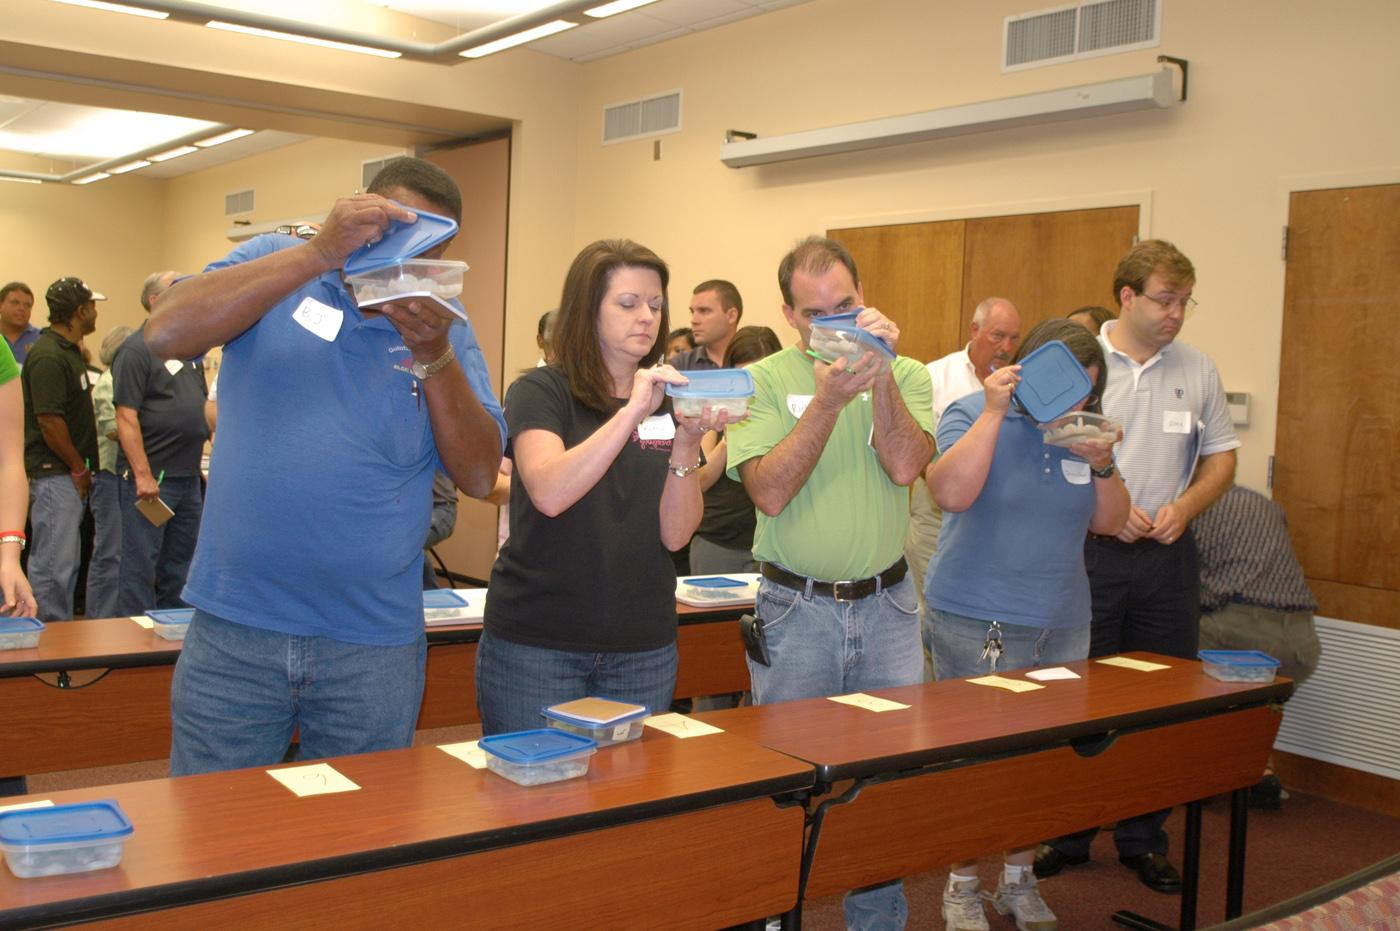 Participants in a recent Harvest from Open Waters training in Biloxi line up to sniff samples of shrimp and grouper spiked with oil in concentrations as low as 5 parts per million and less. (Photo by Karen Templeton)